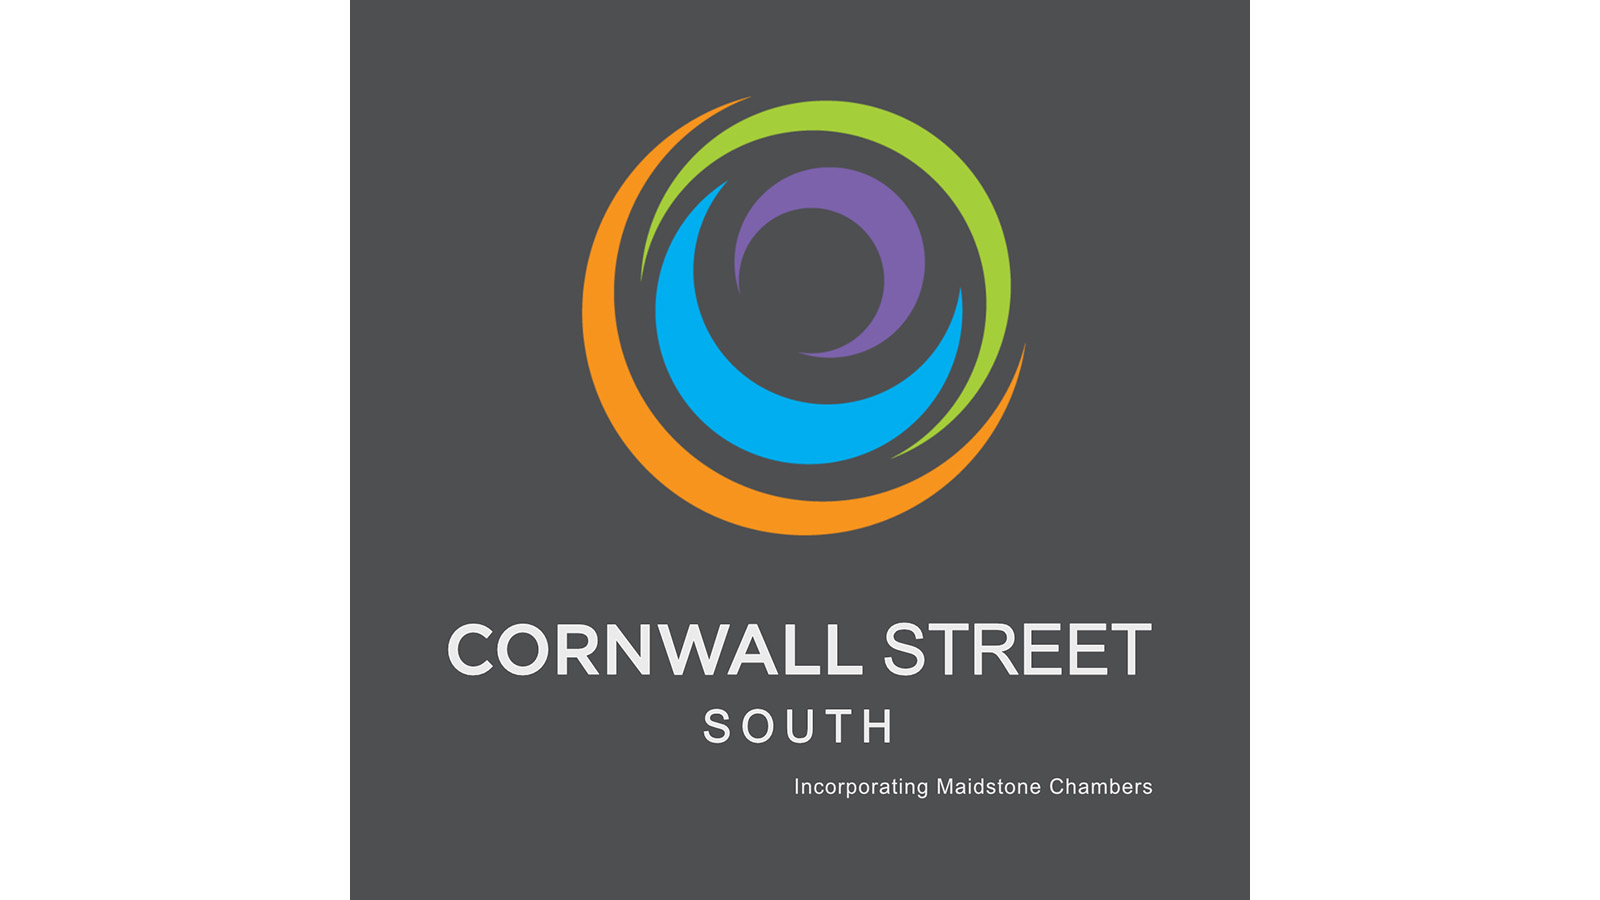 Cornwall Street Barristers and Maidstone Chambers join forces